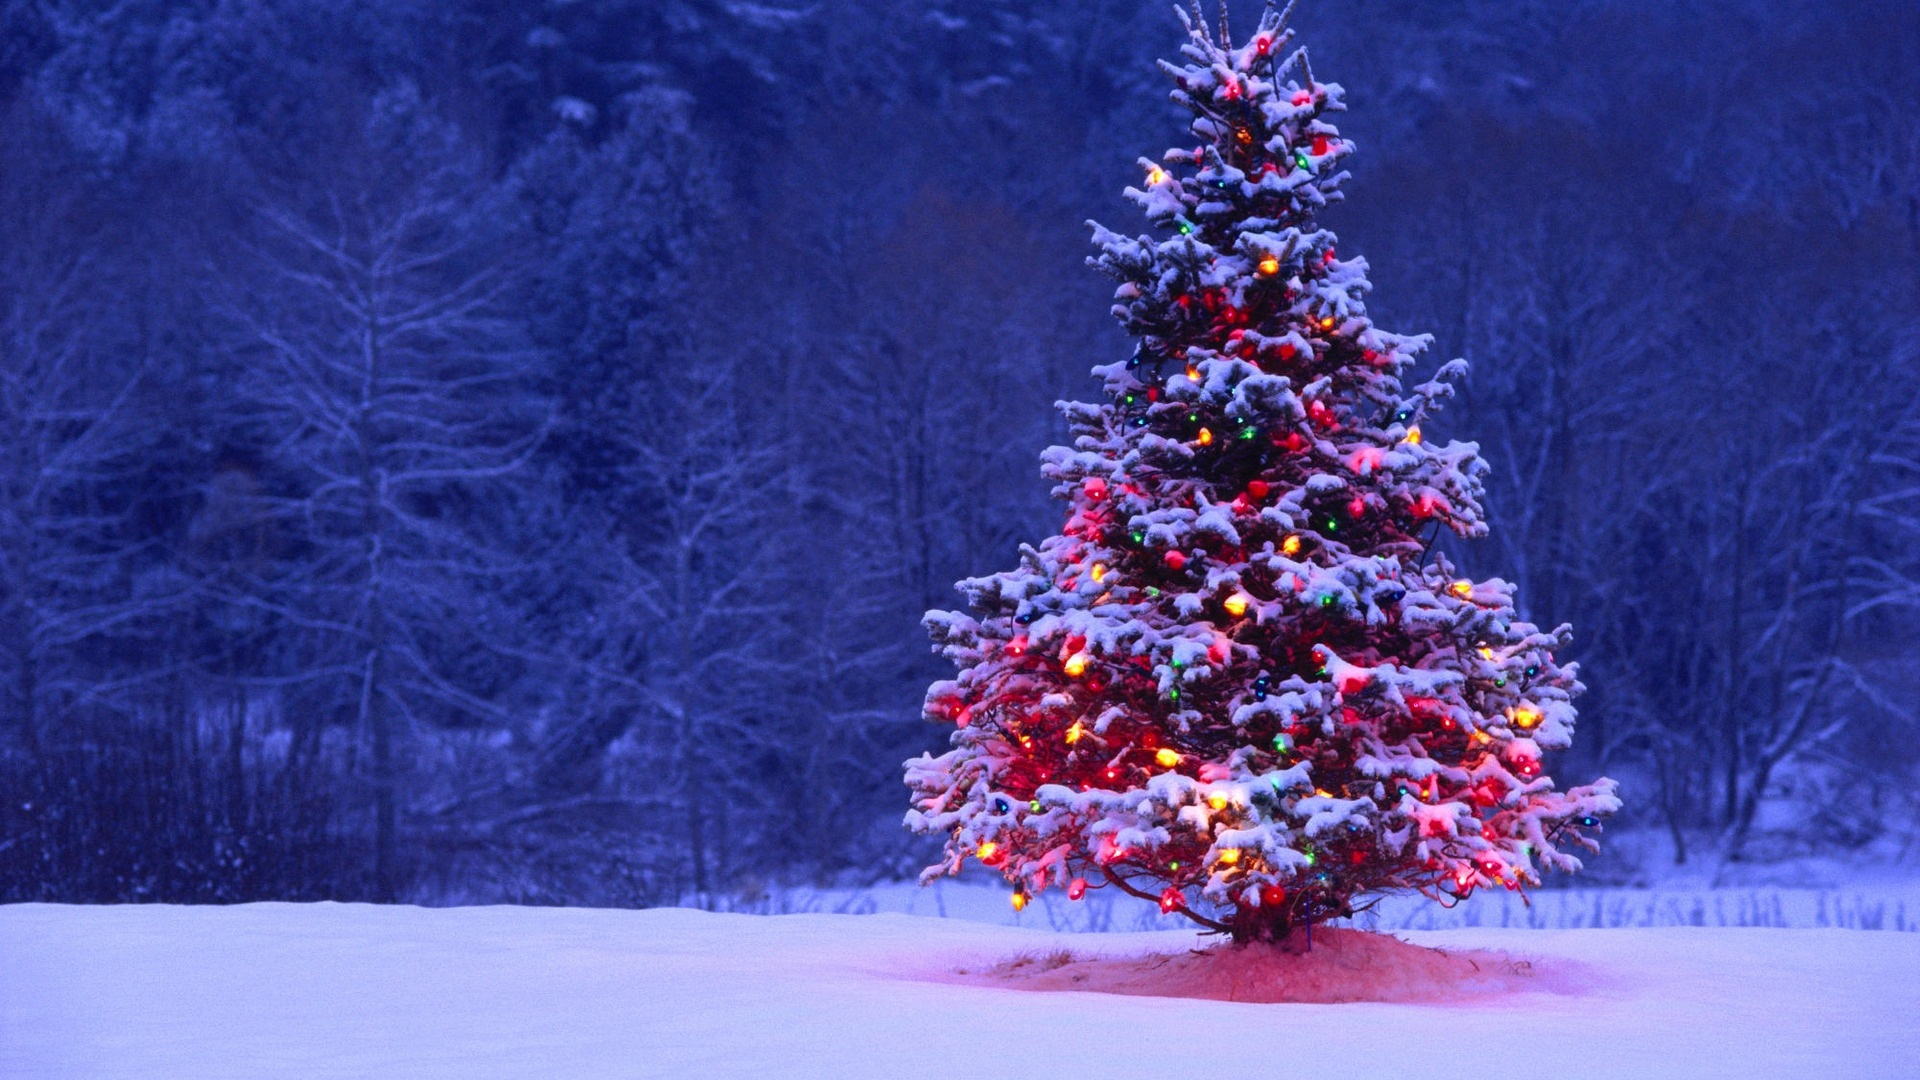 Images Of Christmas Tree with Snow and Lights 113.07 Kb